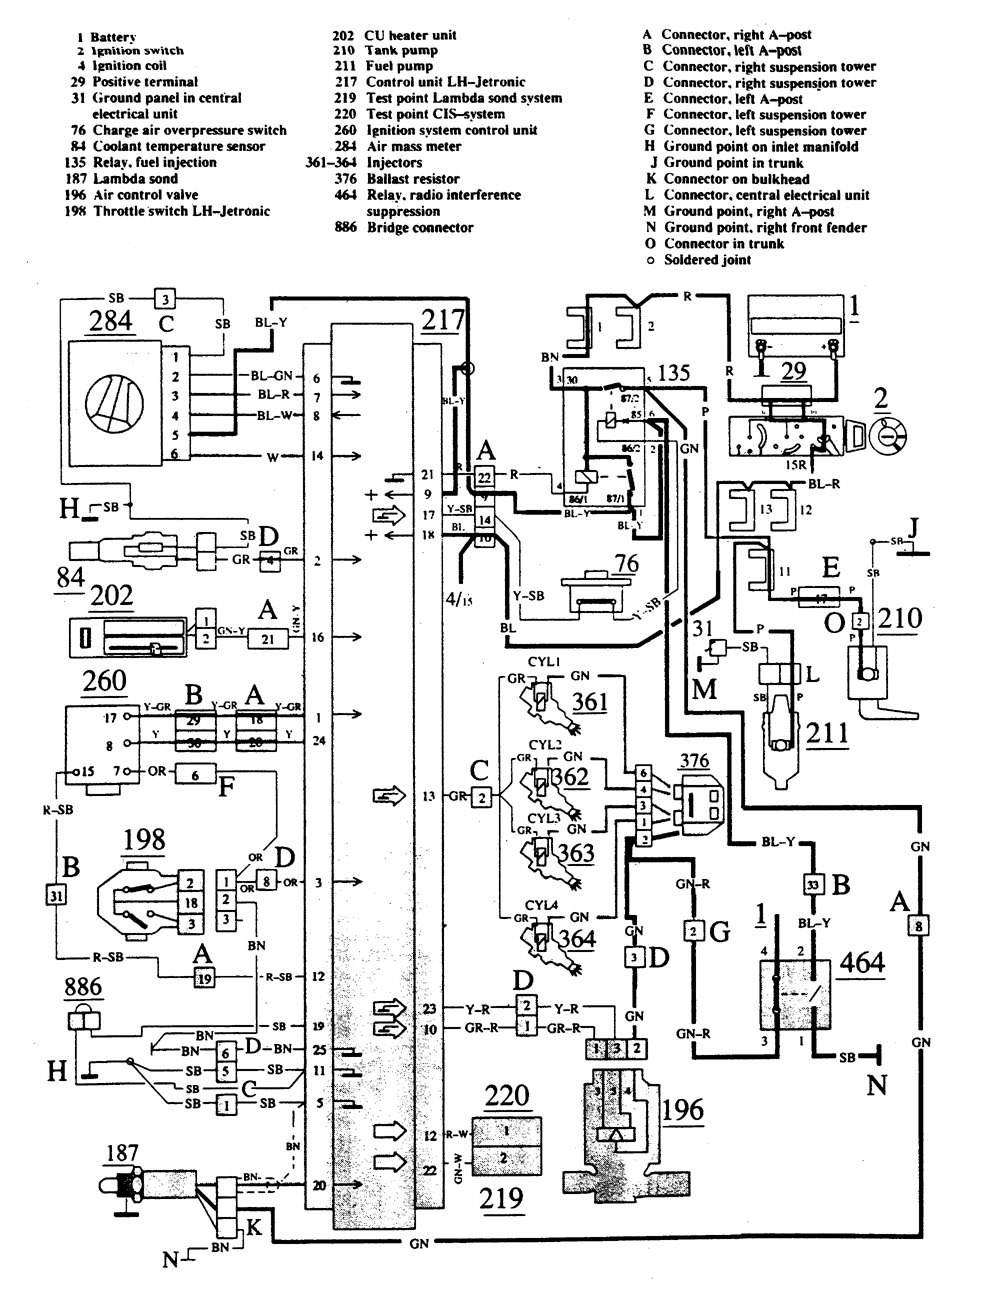 1989 Volvo 740 Car Radio Wiring Schematic